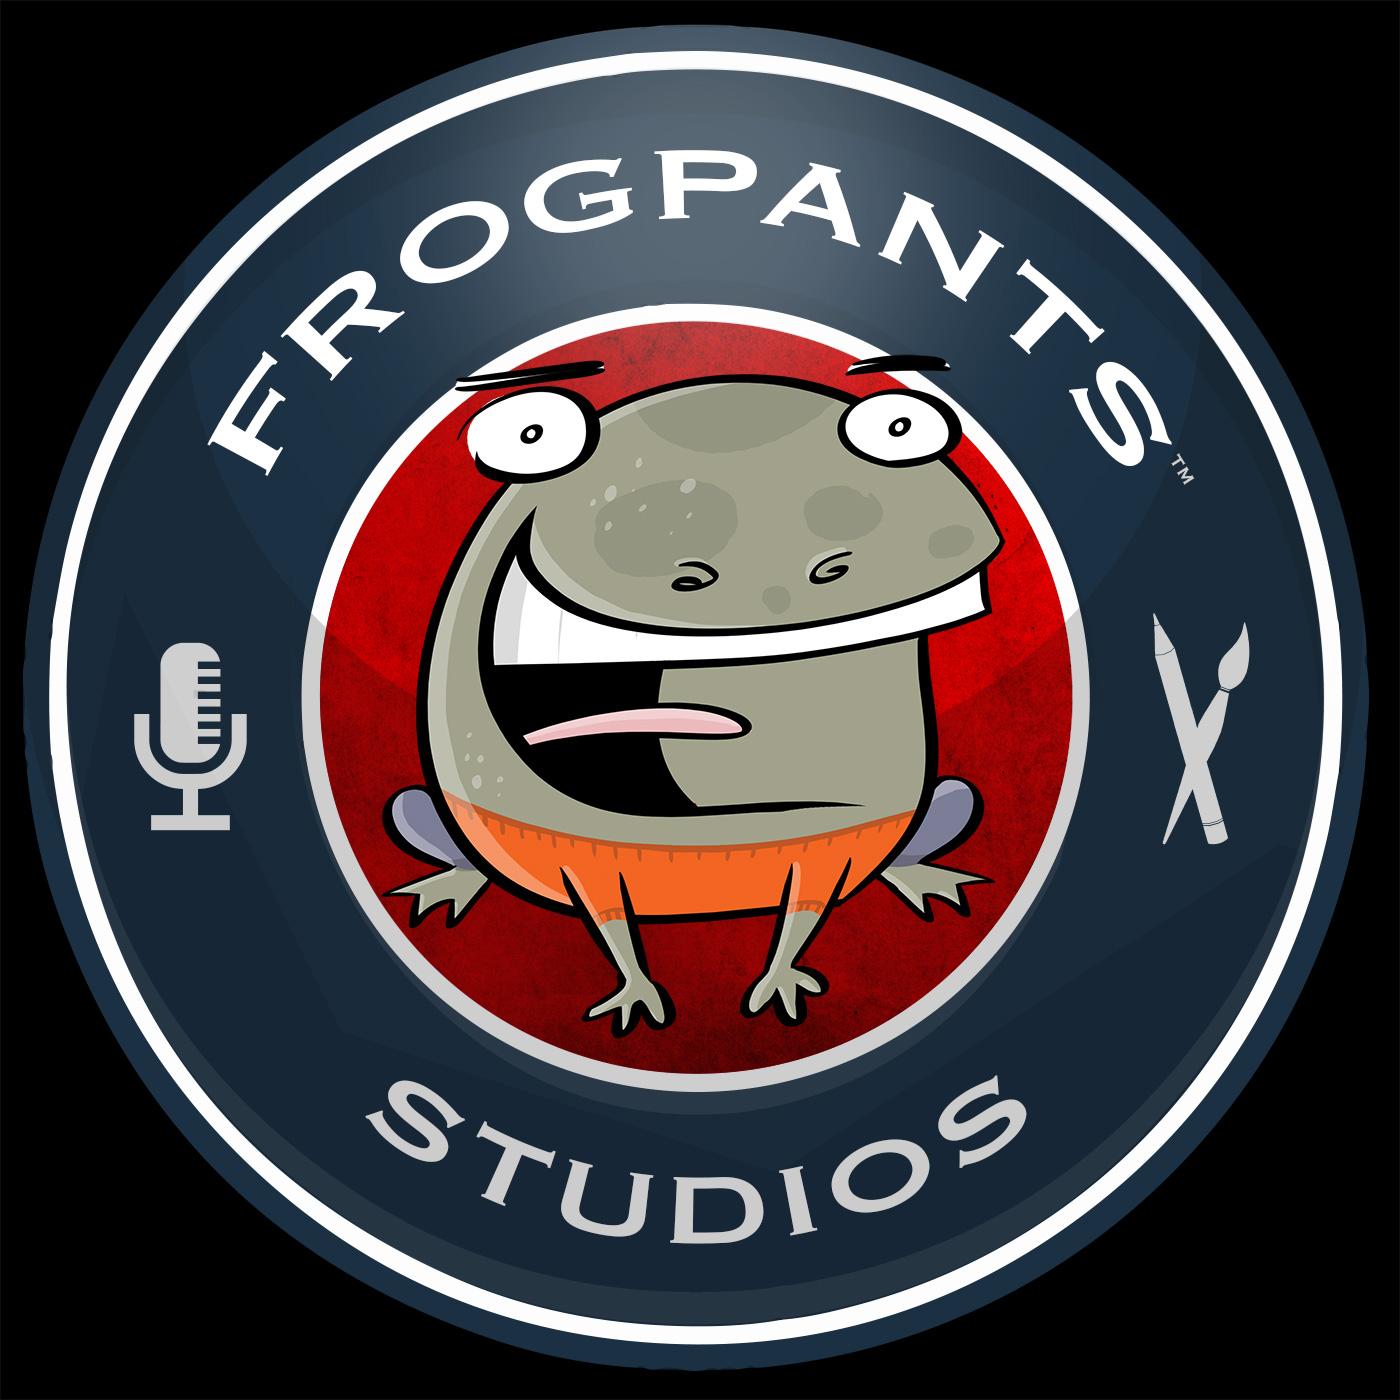 The FrogPants Studios Ultra Feed!